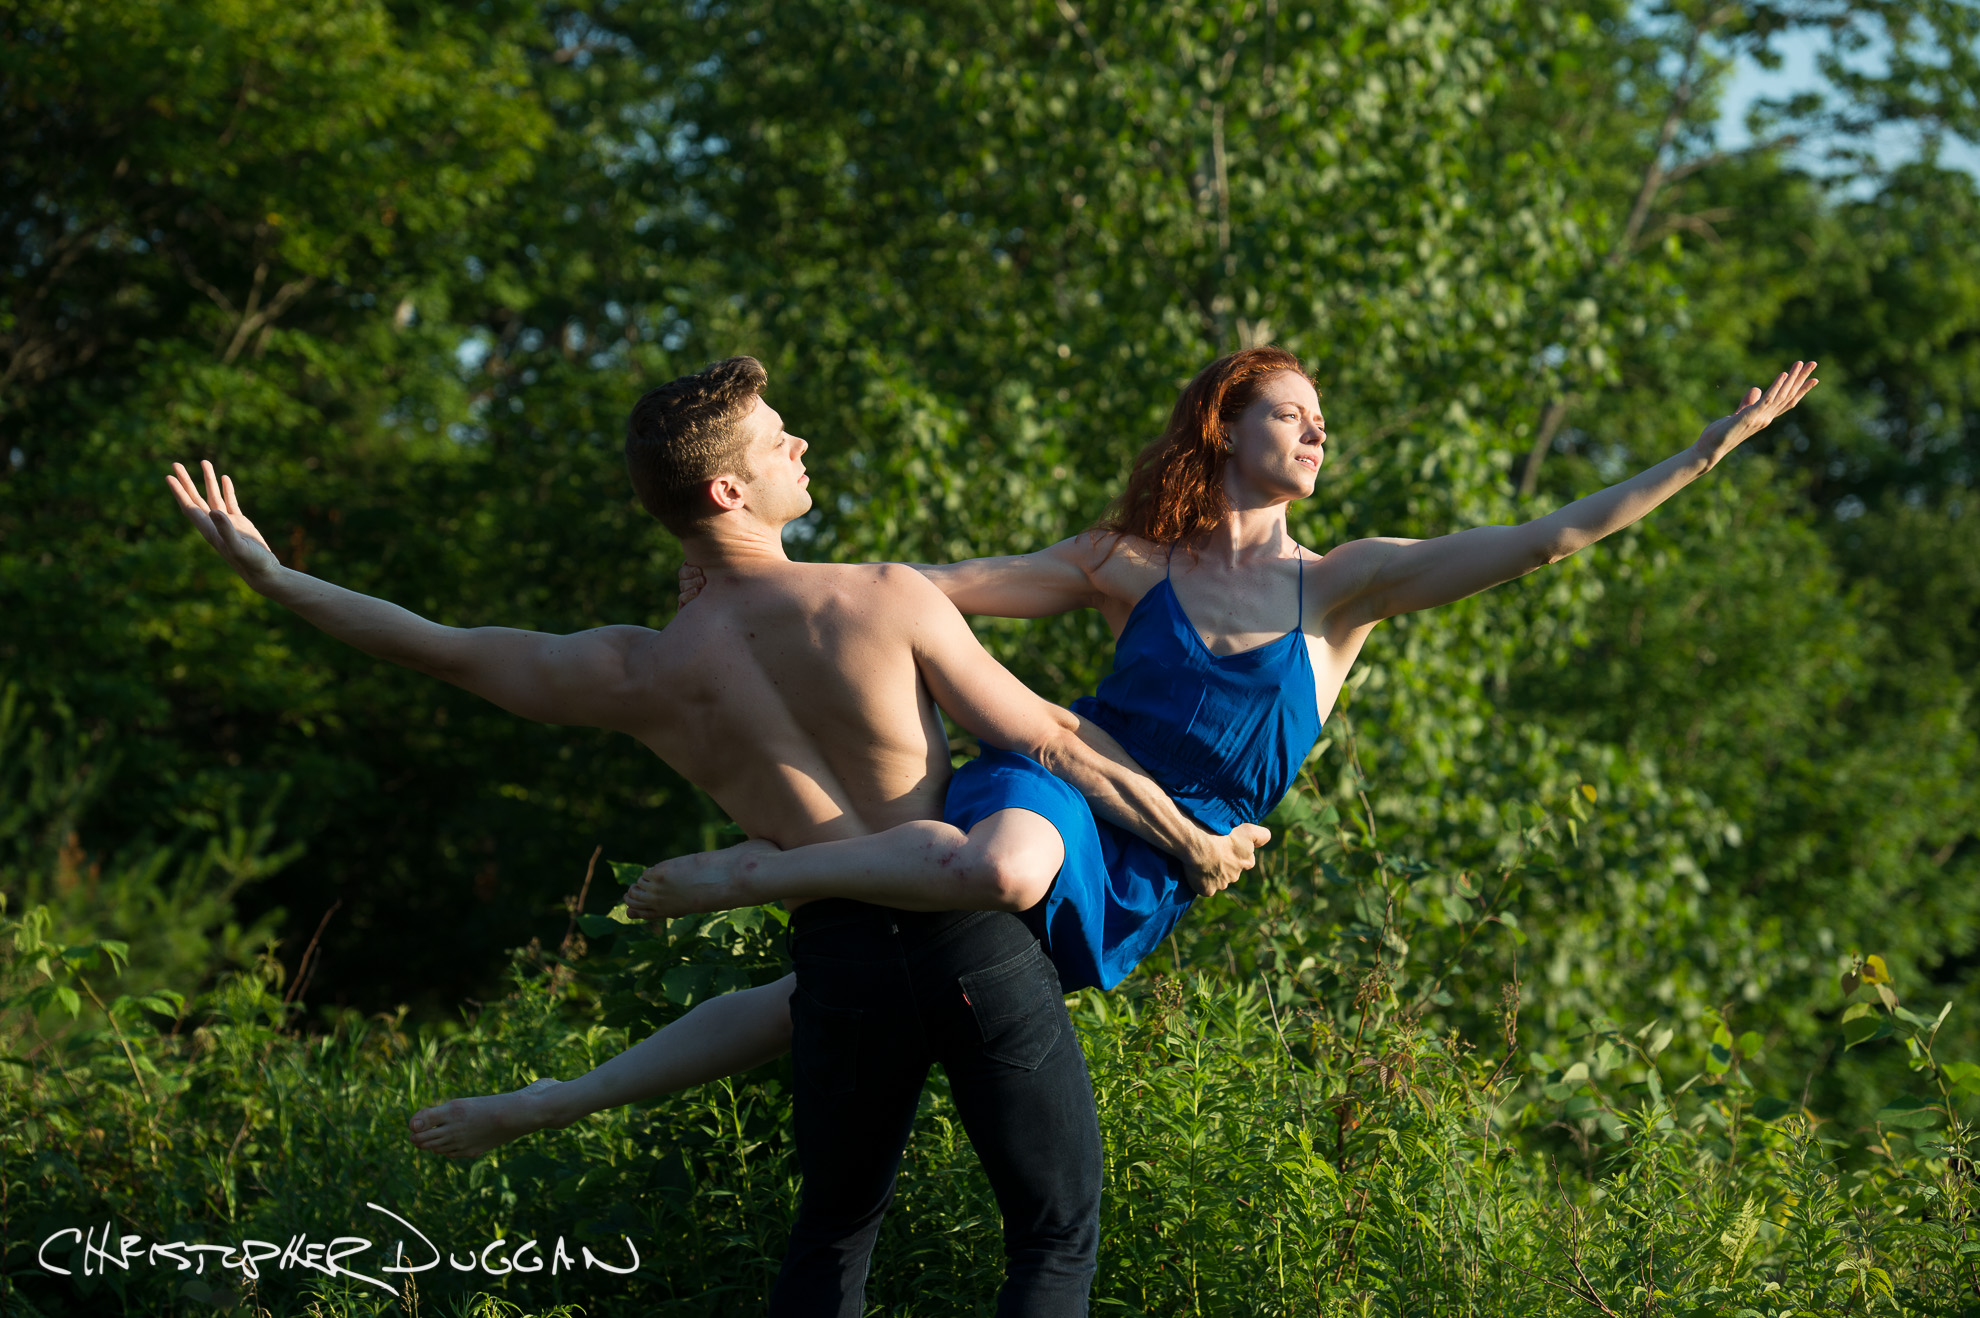 Paul Taylor Dance photos by Christopher Duggan Photography